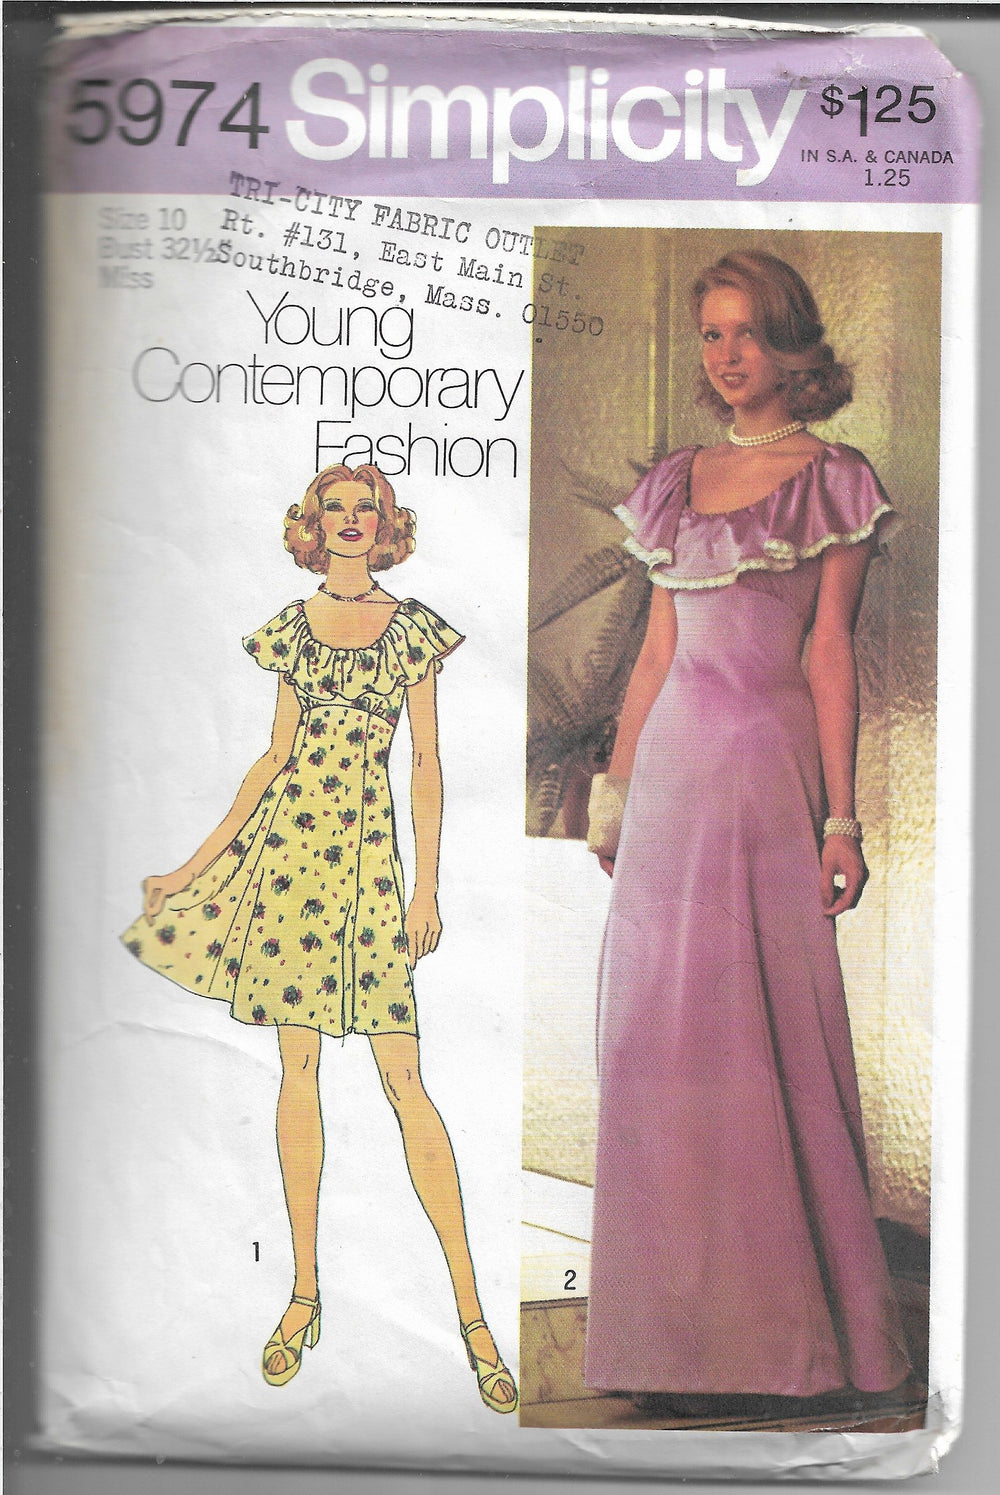 Simplicity 5974 Teen Dress Gown Vintage Sewing Pattern 1970s - VintageStitching - Vintage Sewing Patterns